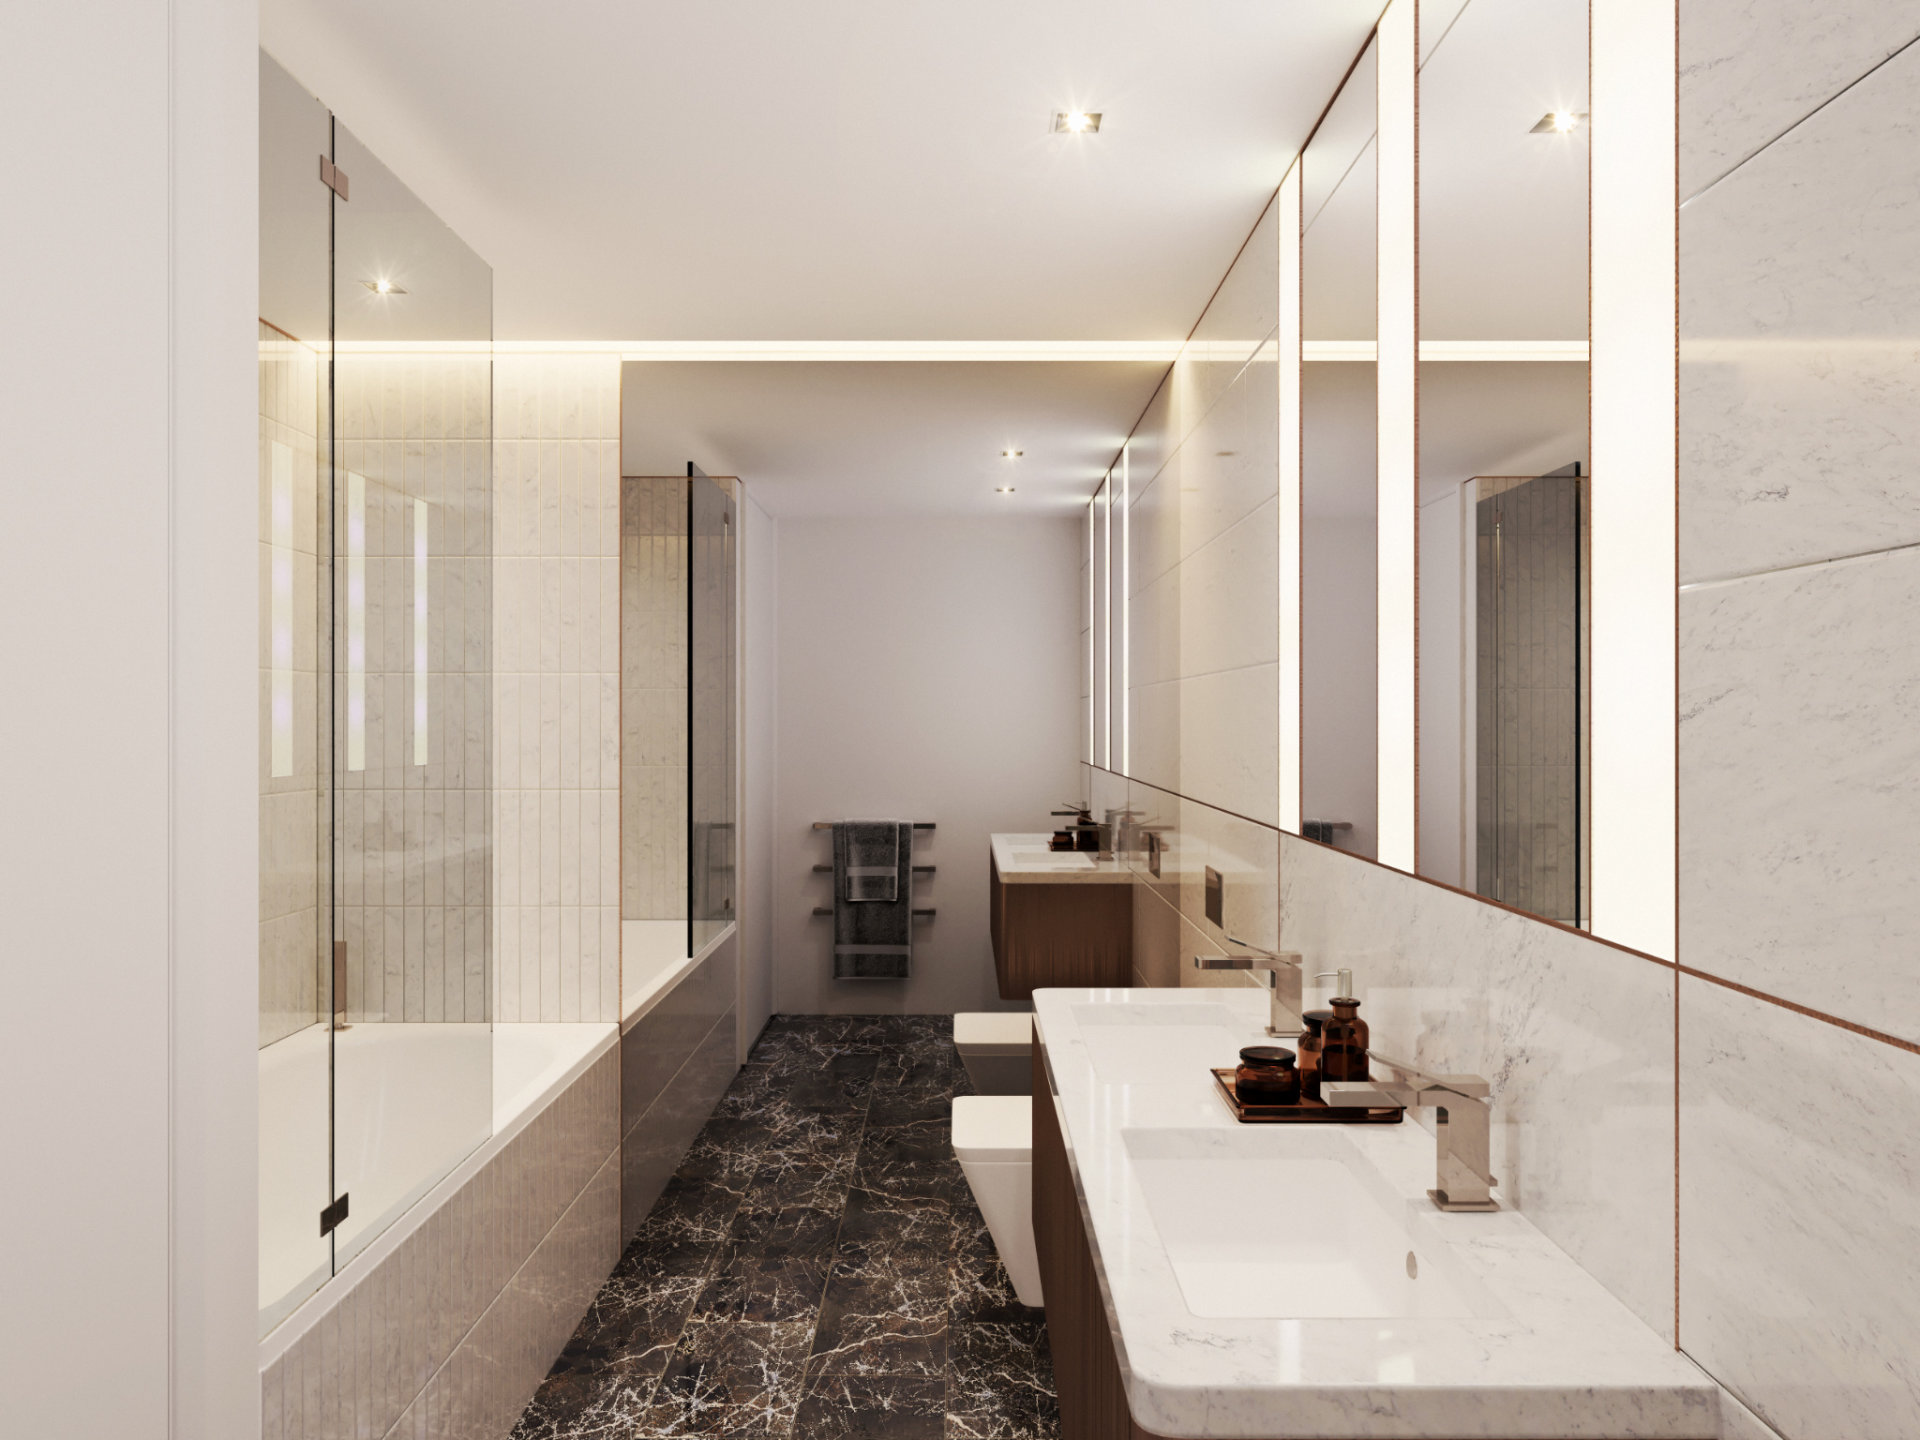 3D visualizationof a Bathroom - 3D visualization - Bowden Architecture - Great Portland Street by Bowden Architecture